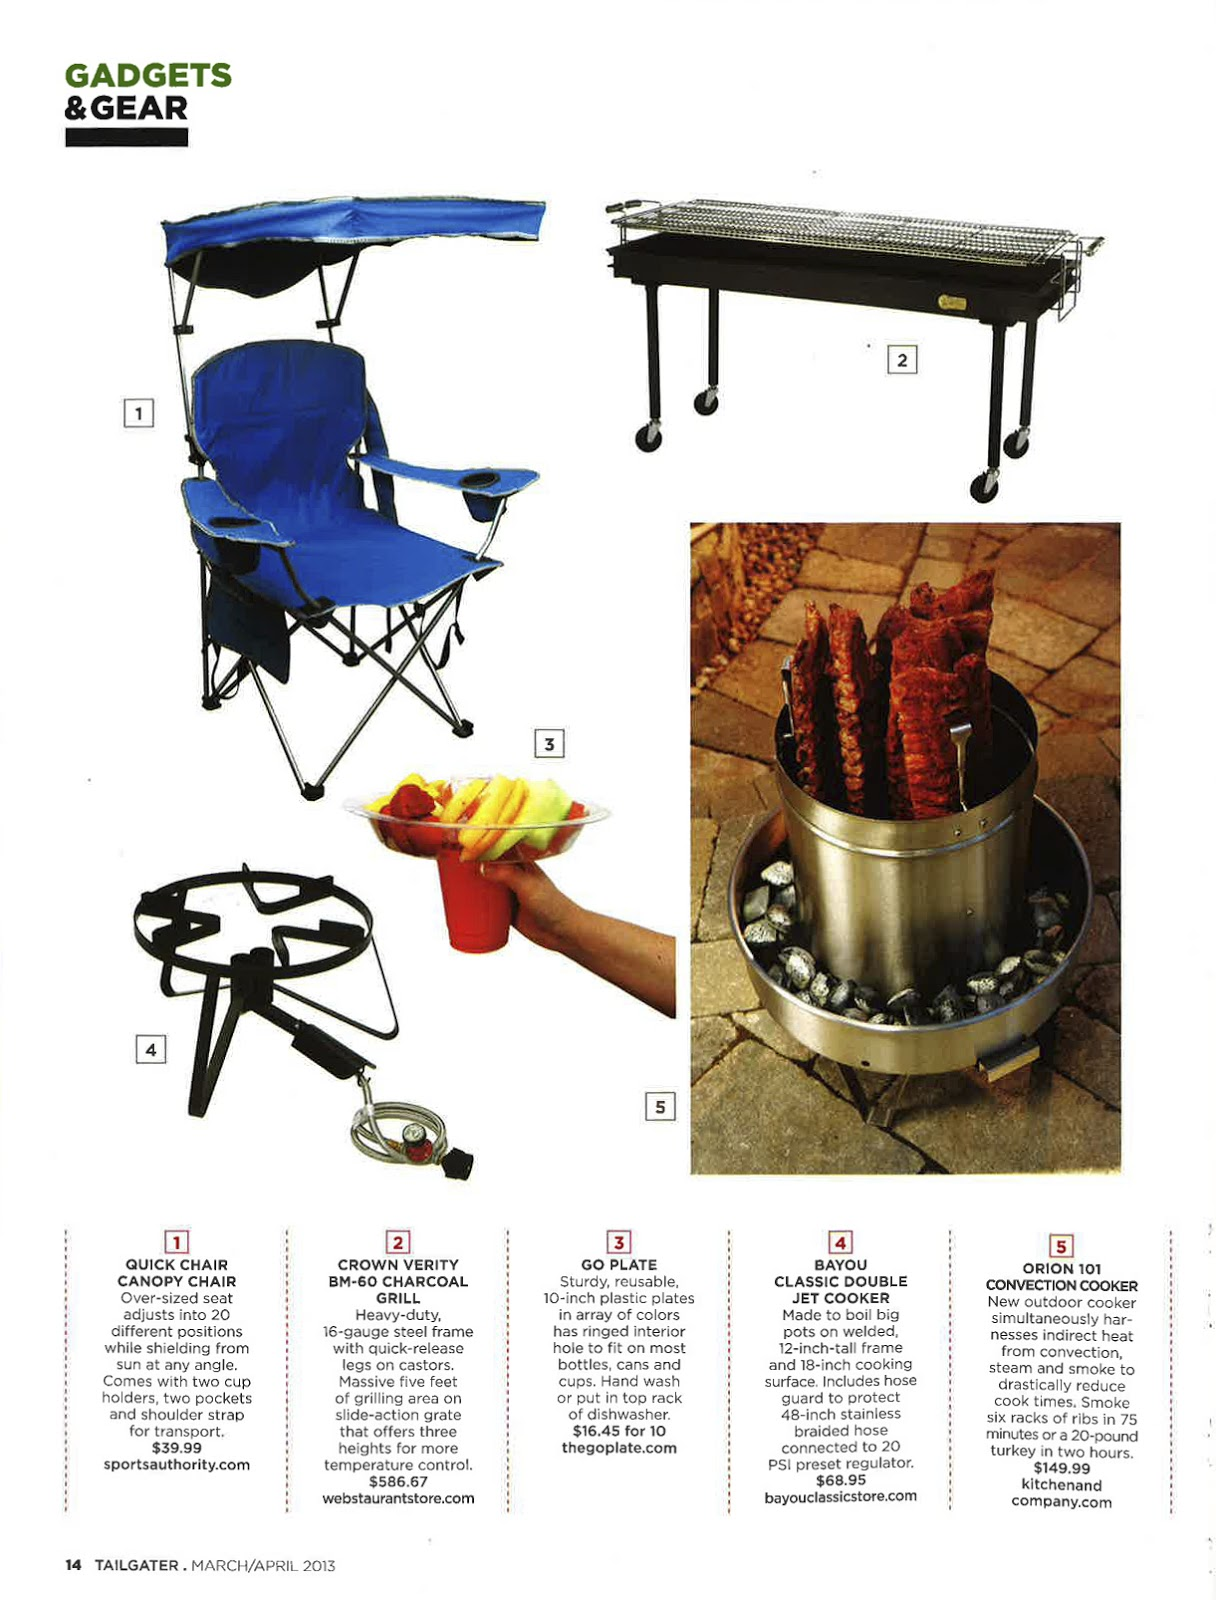 Quik Shade Chair Covers To Buy Melbourne You Tailgater Monthly Features Tailgate